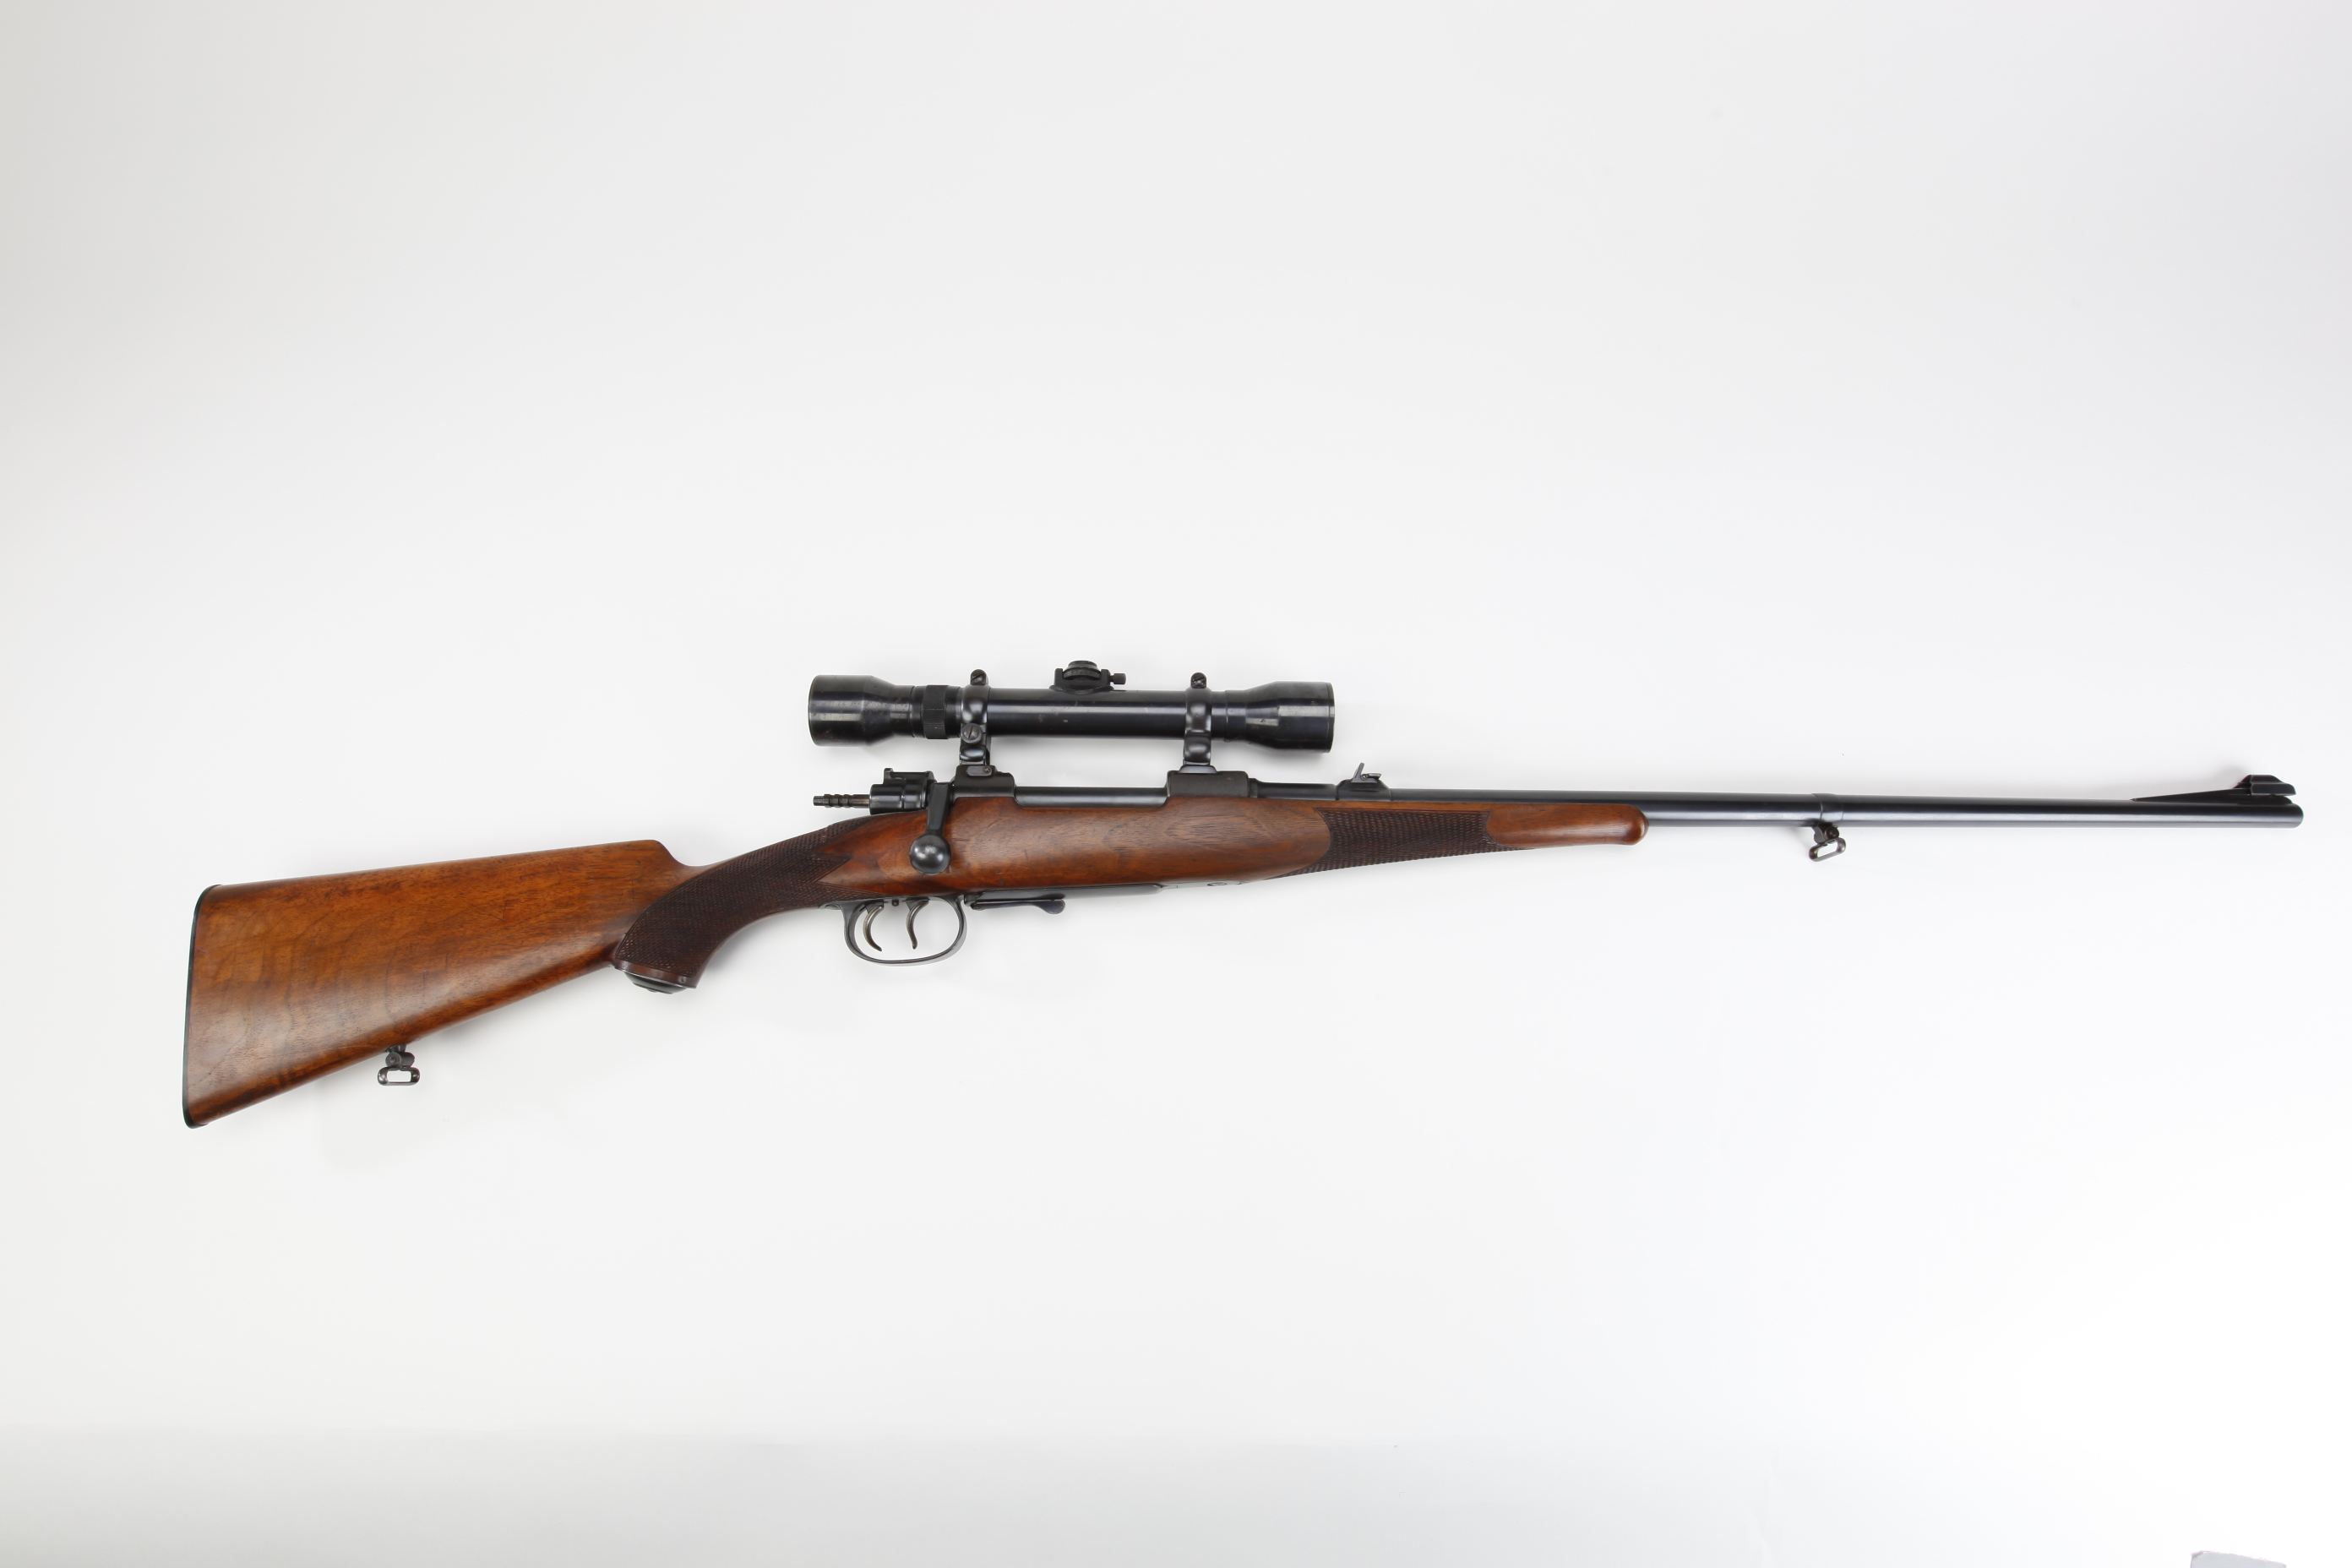 Mauser Type B Bolt Action Rifle with telescopic sight